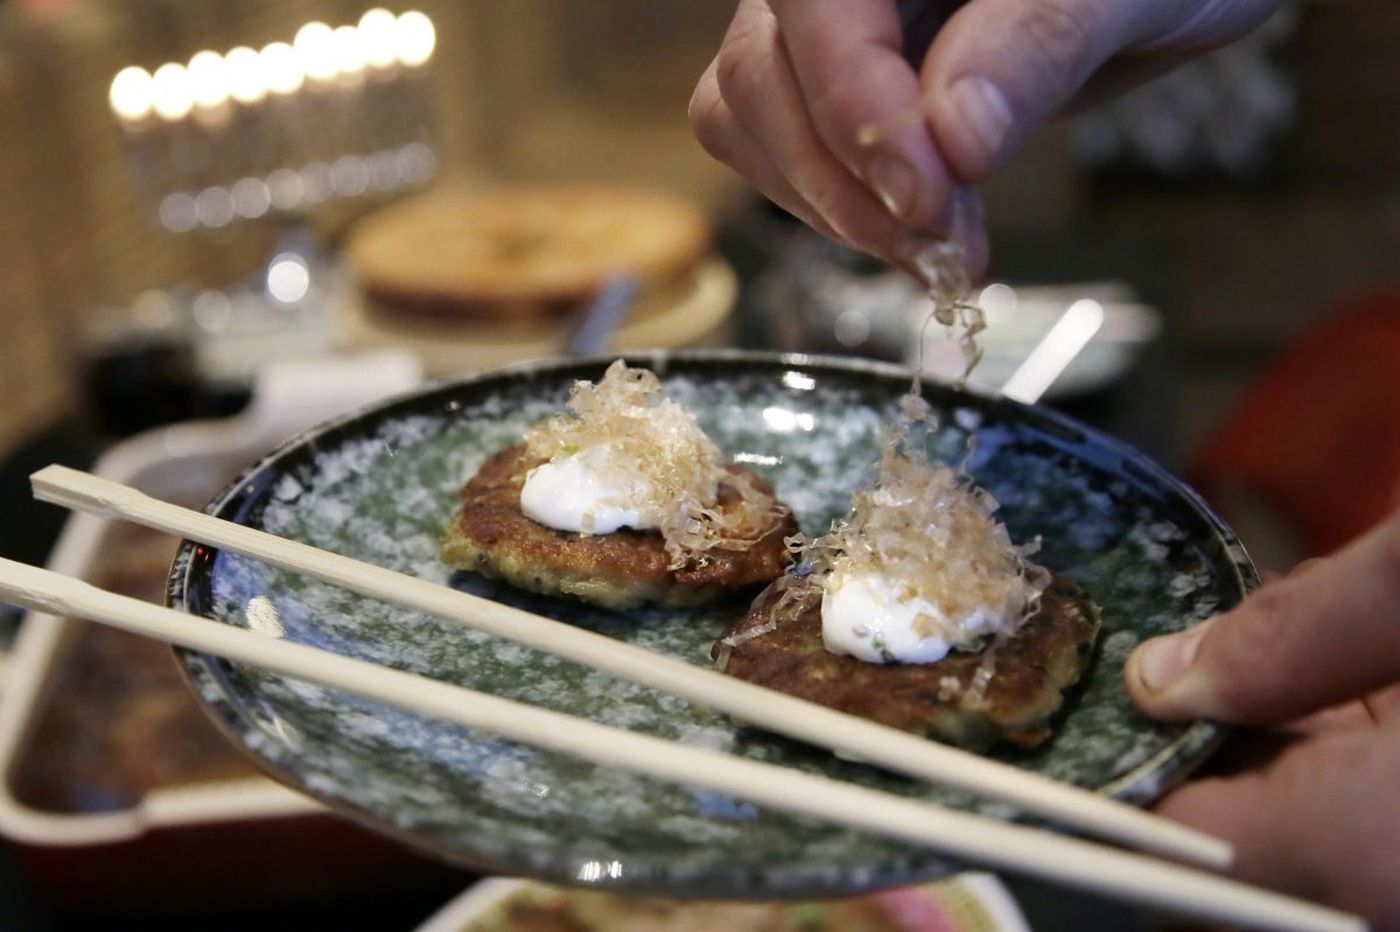 At Cheu, a Hanukkah meal with flavors from Japan and China